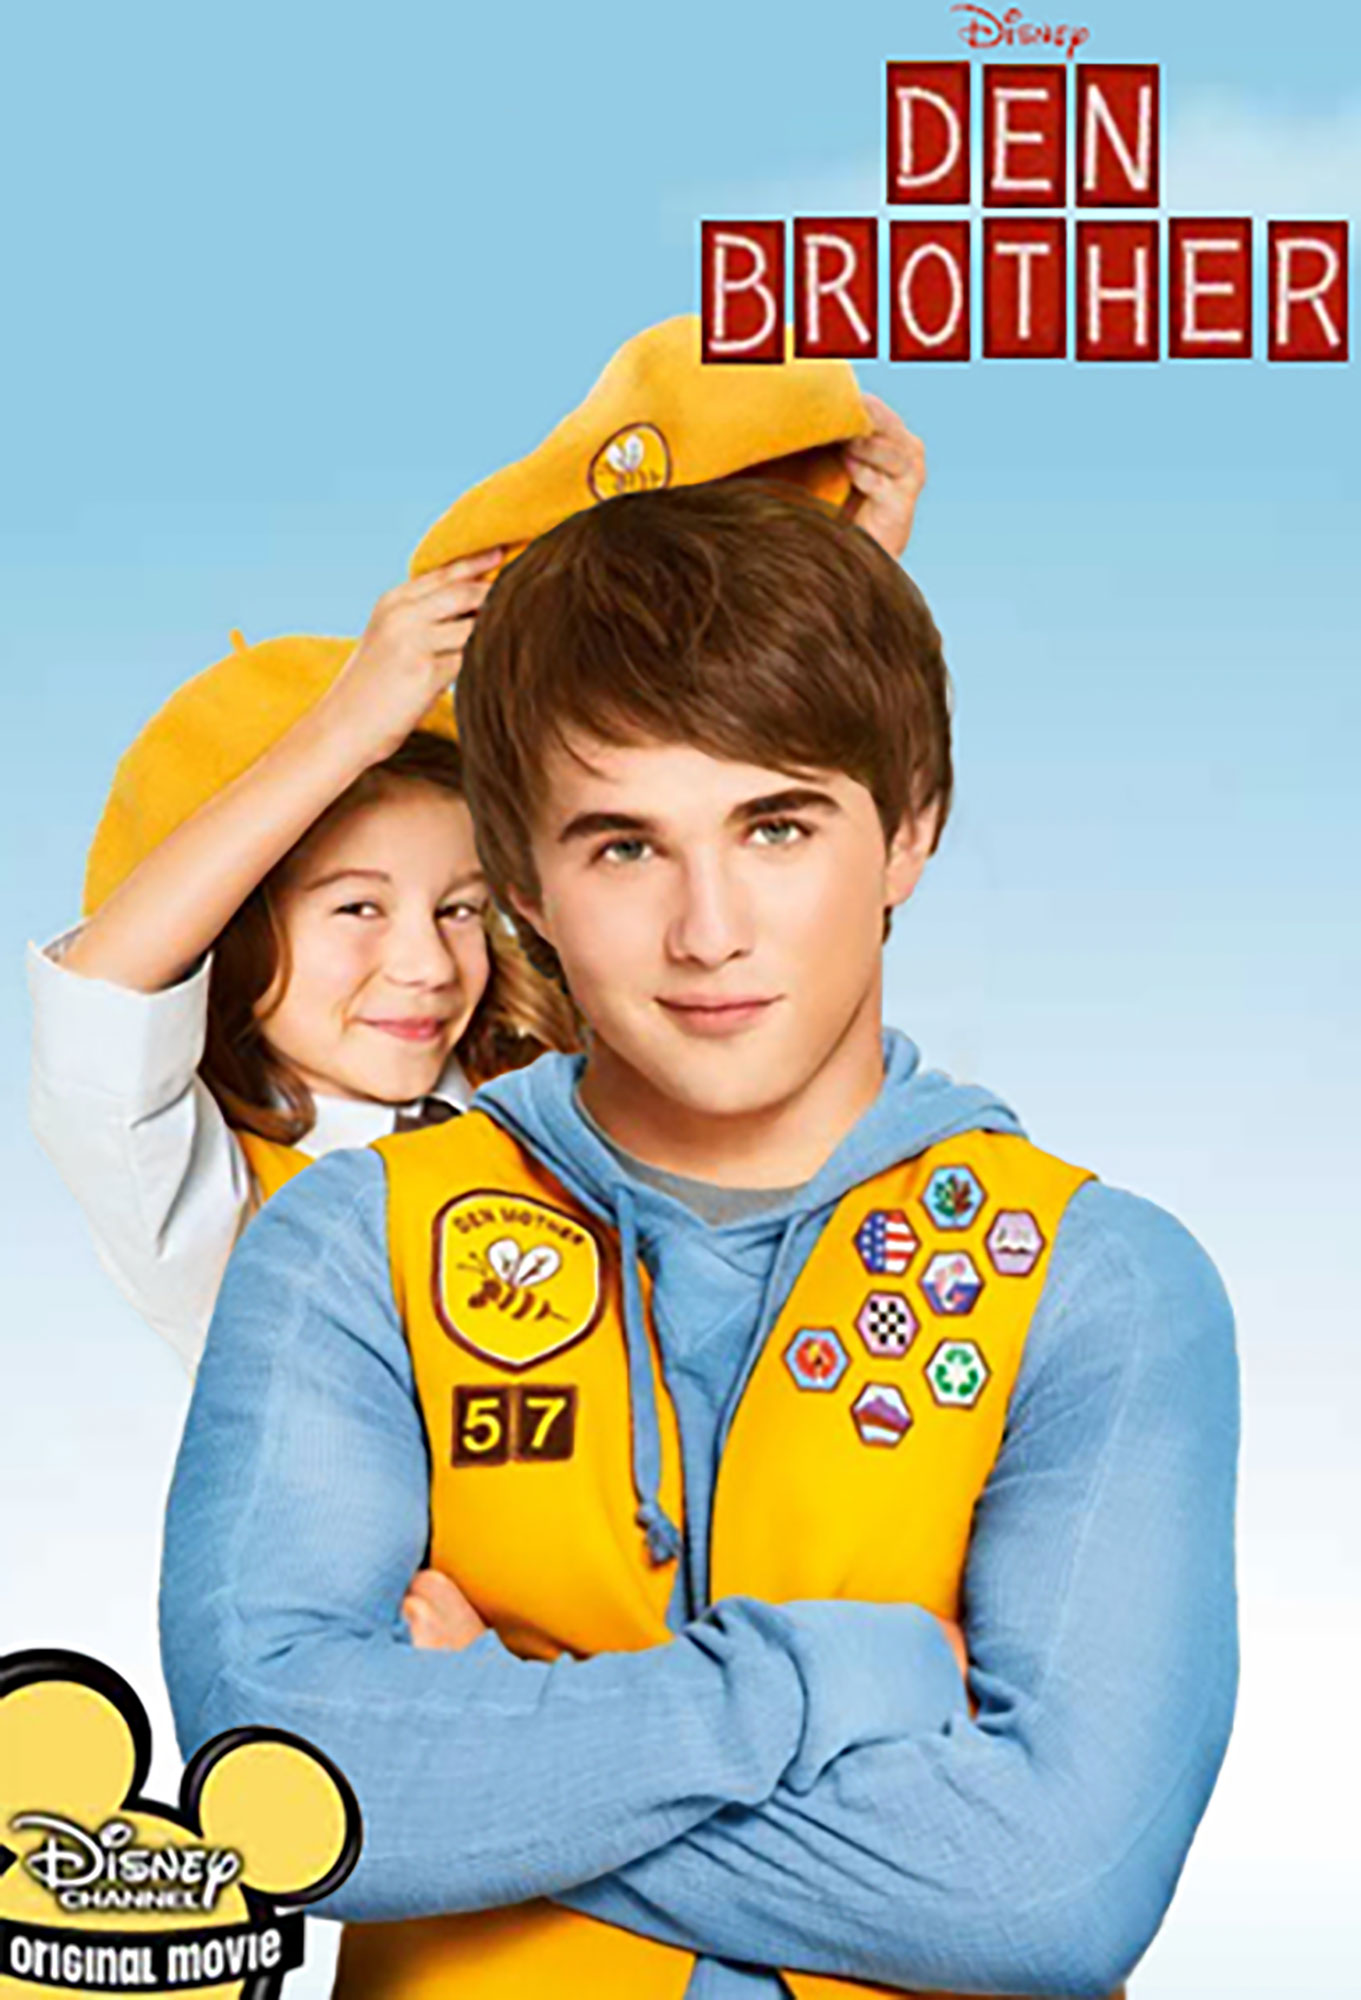 affiche poster bienvenue scout den brother disney channel